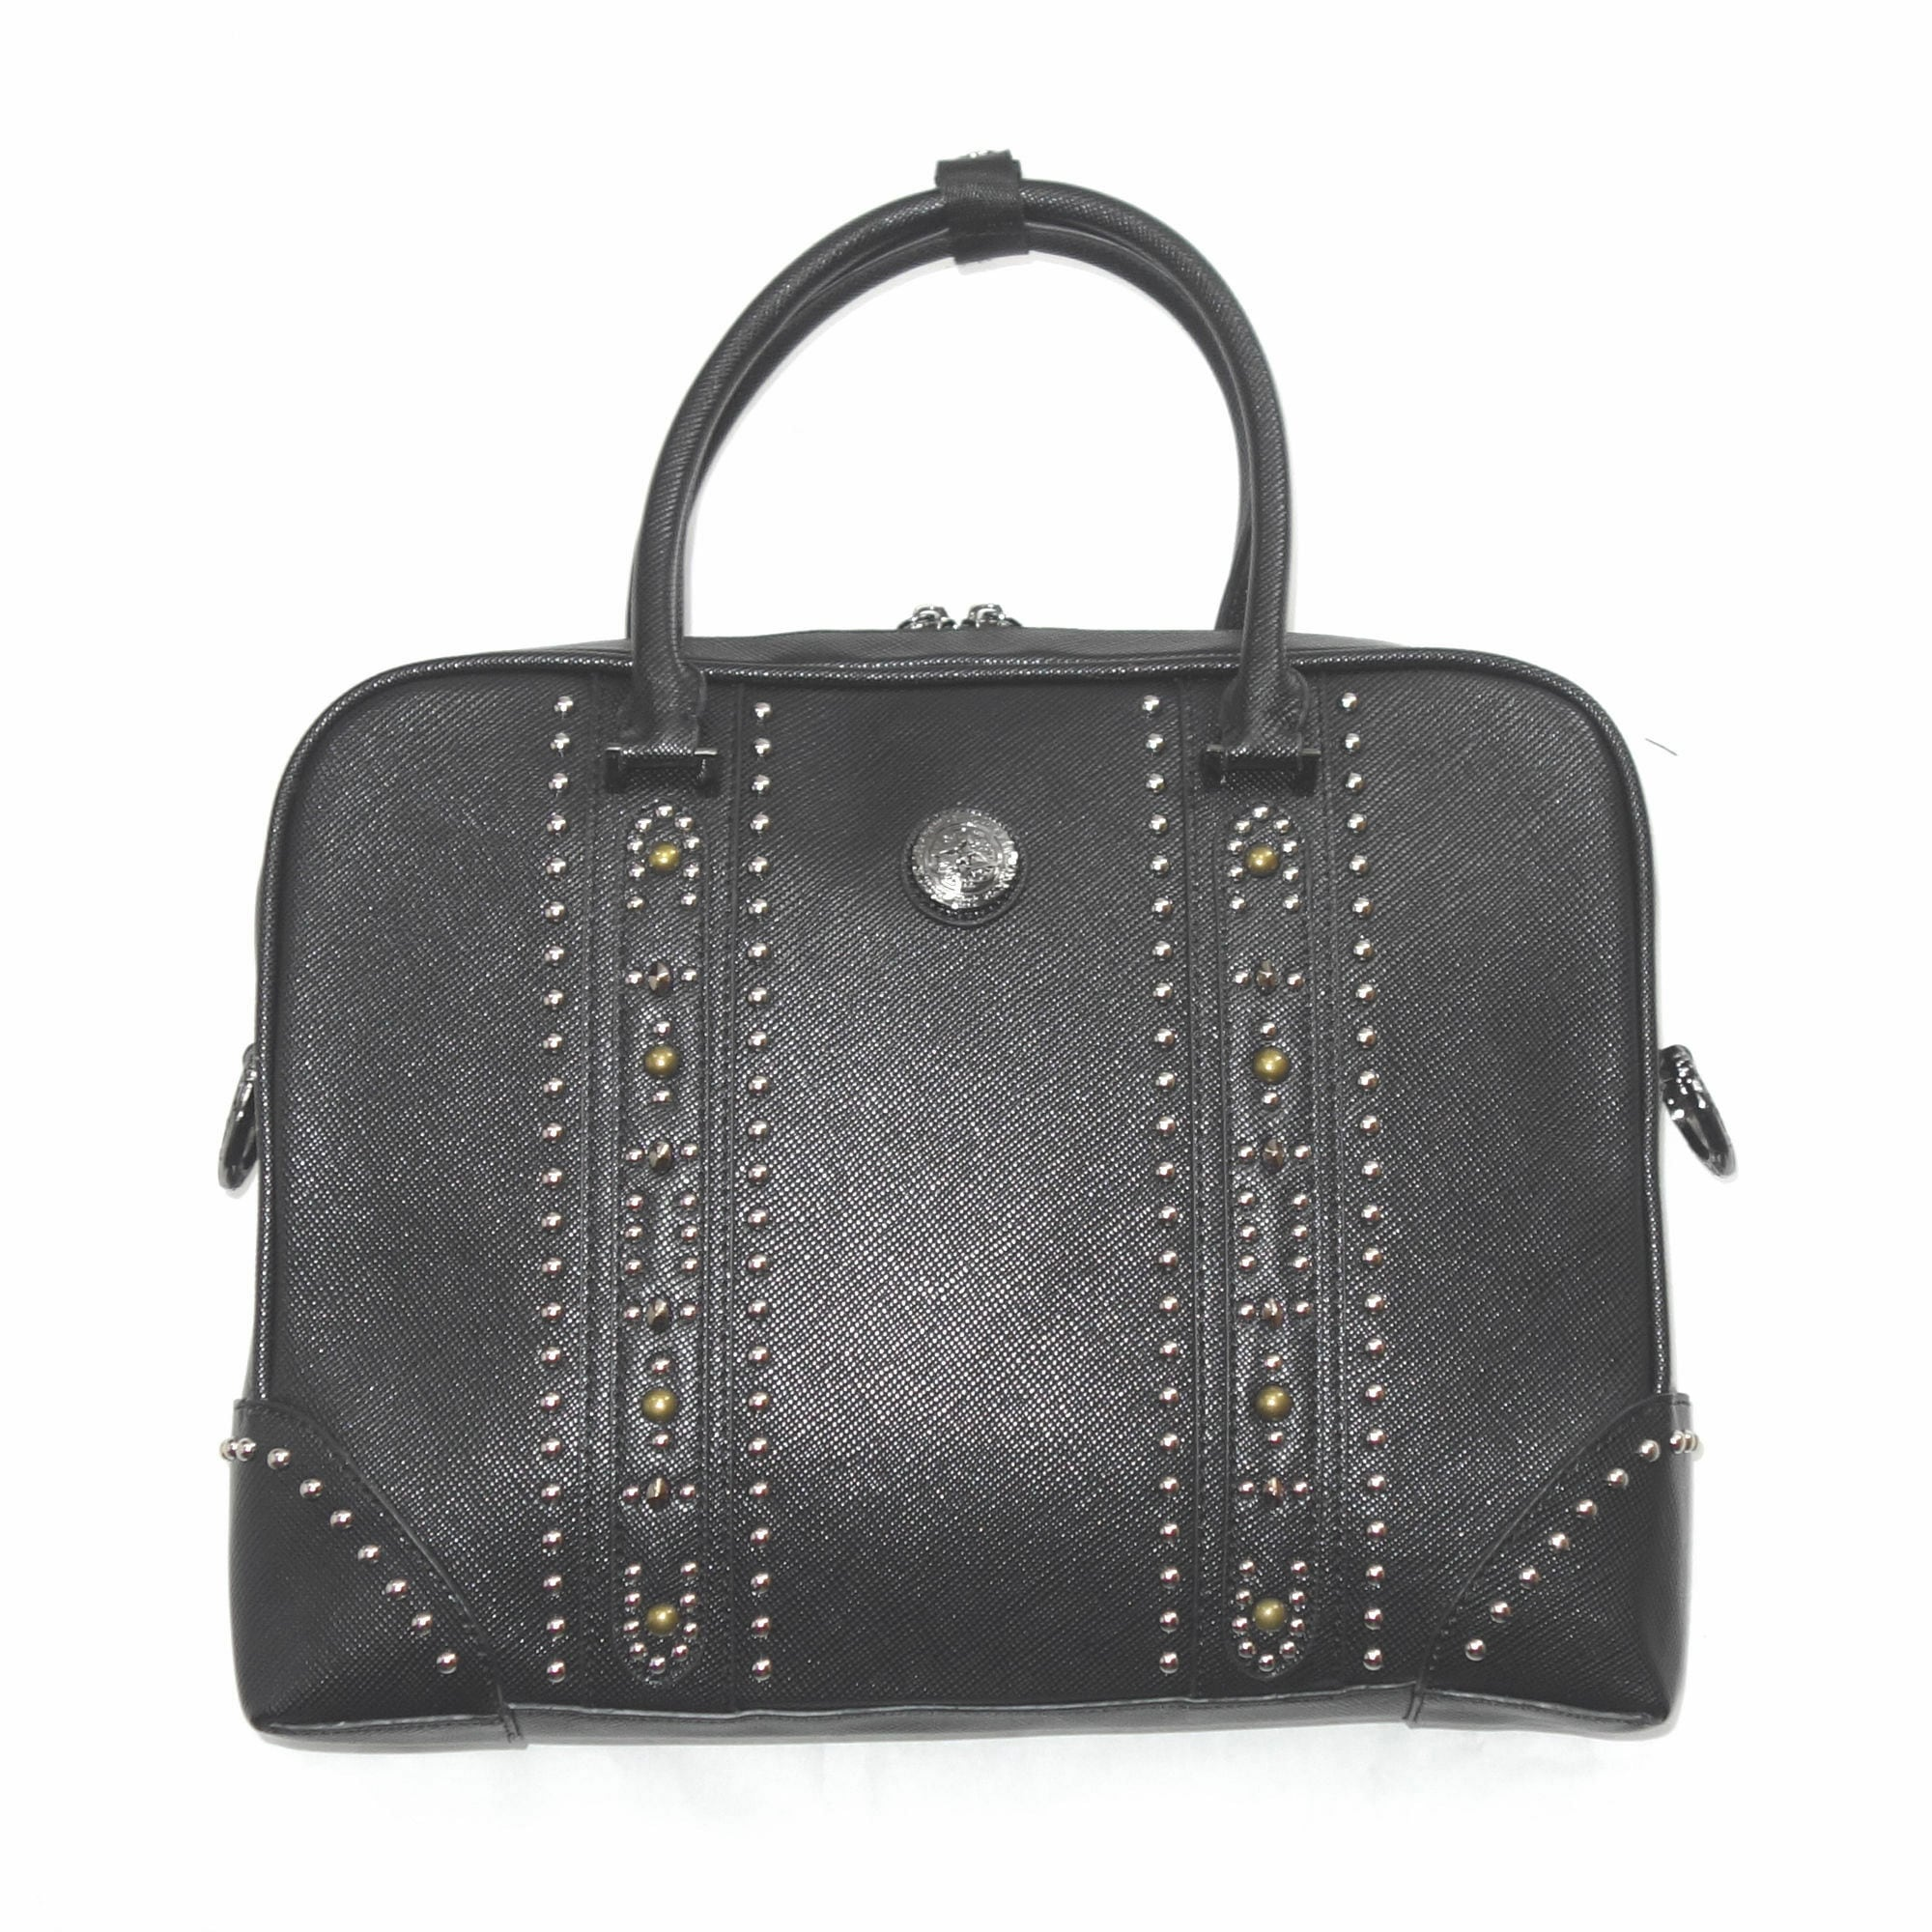 3Wayスタッズブリーフケースバックパック ACBG0025 3Way studs briefcase backpack